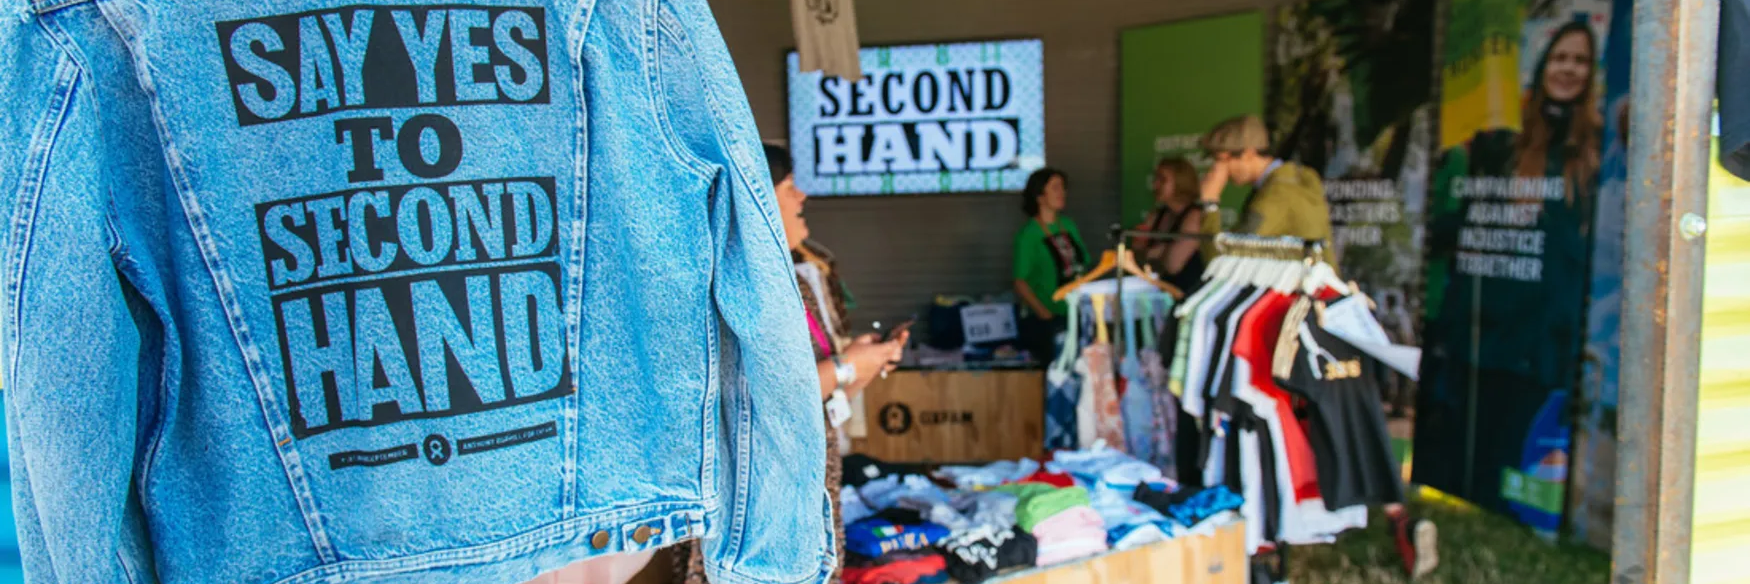 Second Hand September is back for its third year. Find out how you can take part!